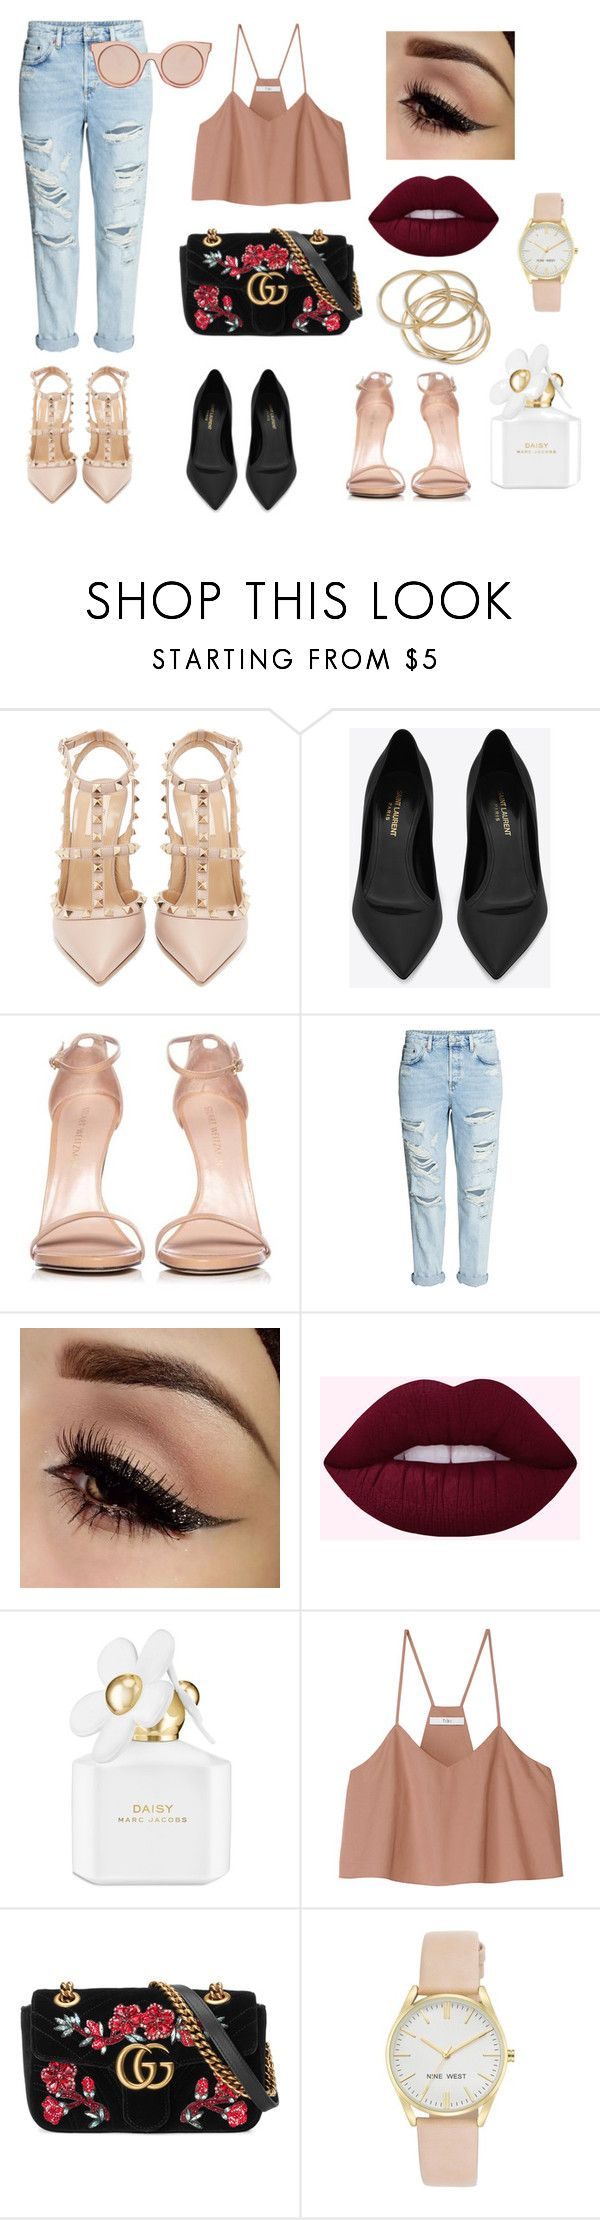 """City kitty"" by sweetlittlebunny on Polyvore featuring moda, Valentino, Yves Saint Laurent, Stuart Weitzman, H&M, Marc Jacobs, TIBI, Gucci, Nine West i ABS by Allen Schwartz"